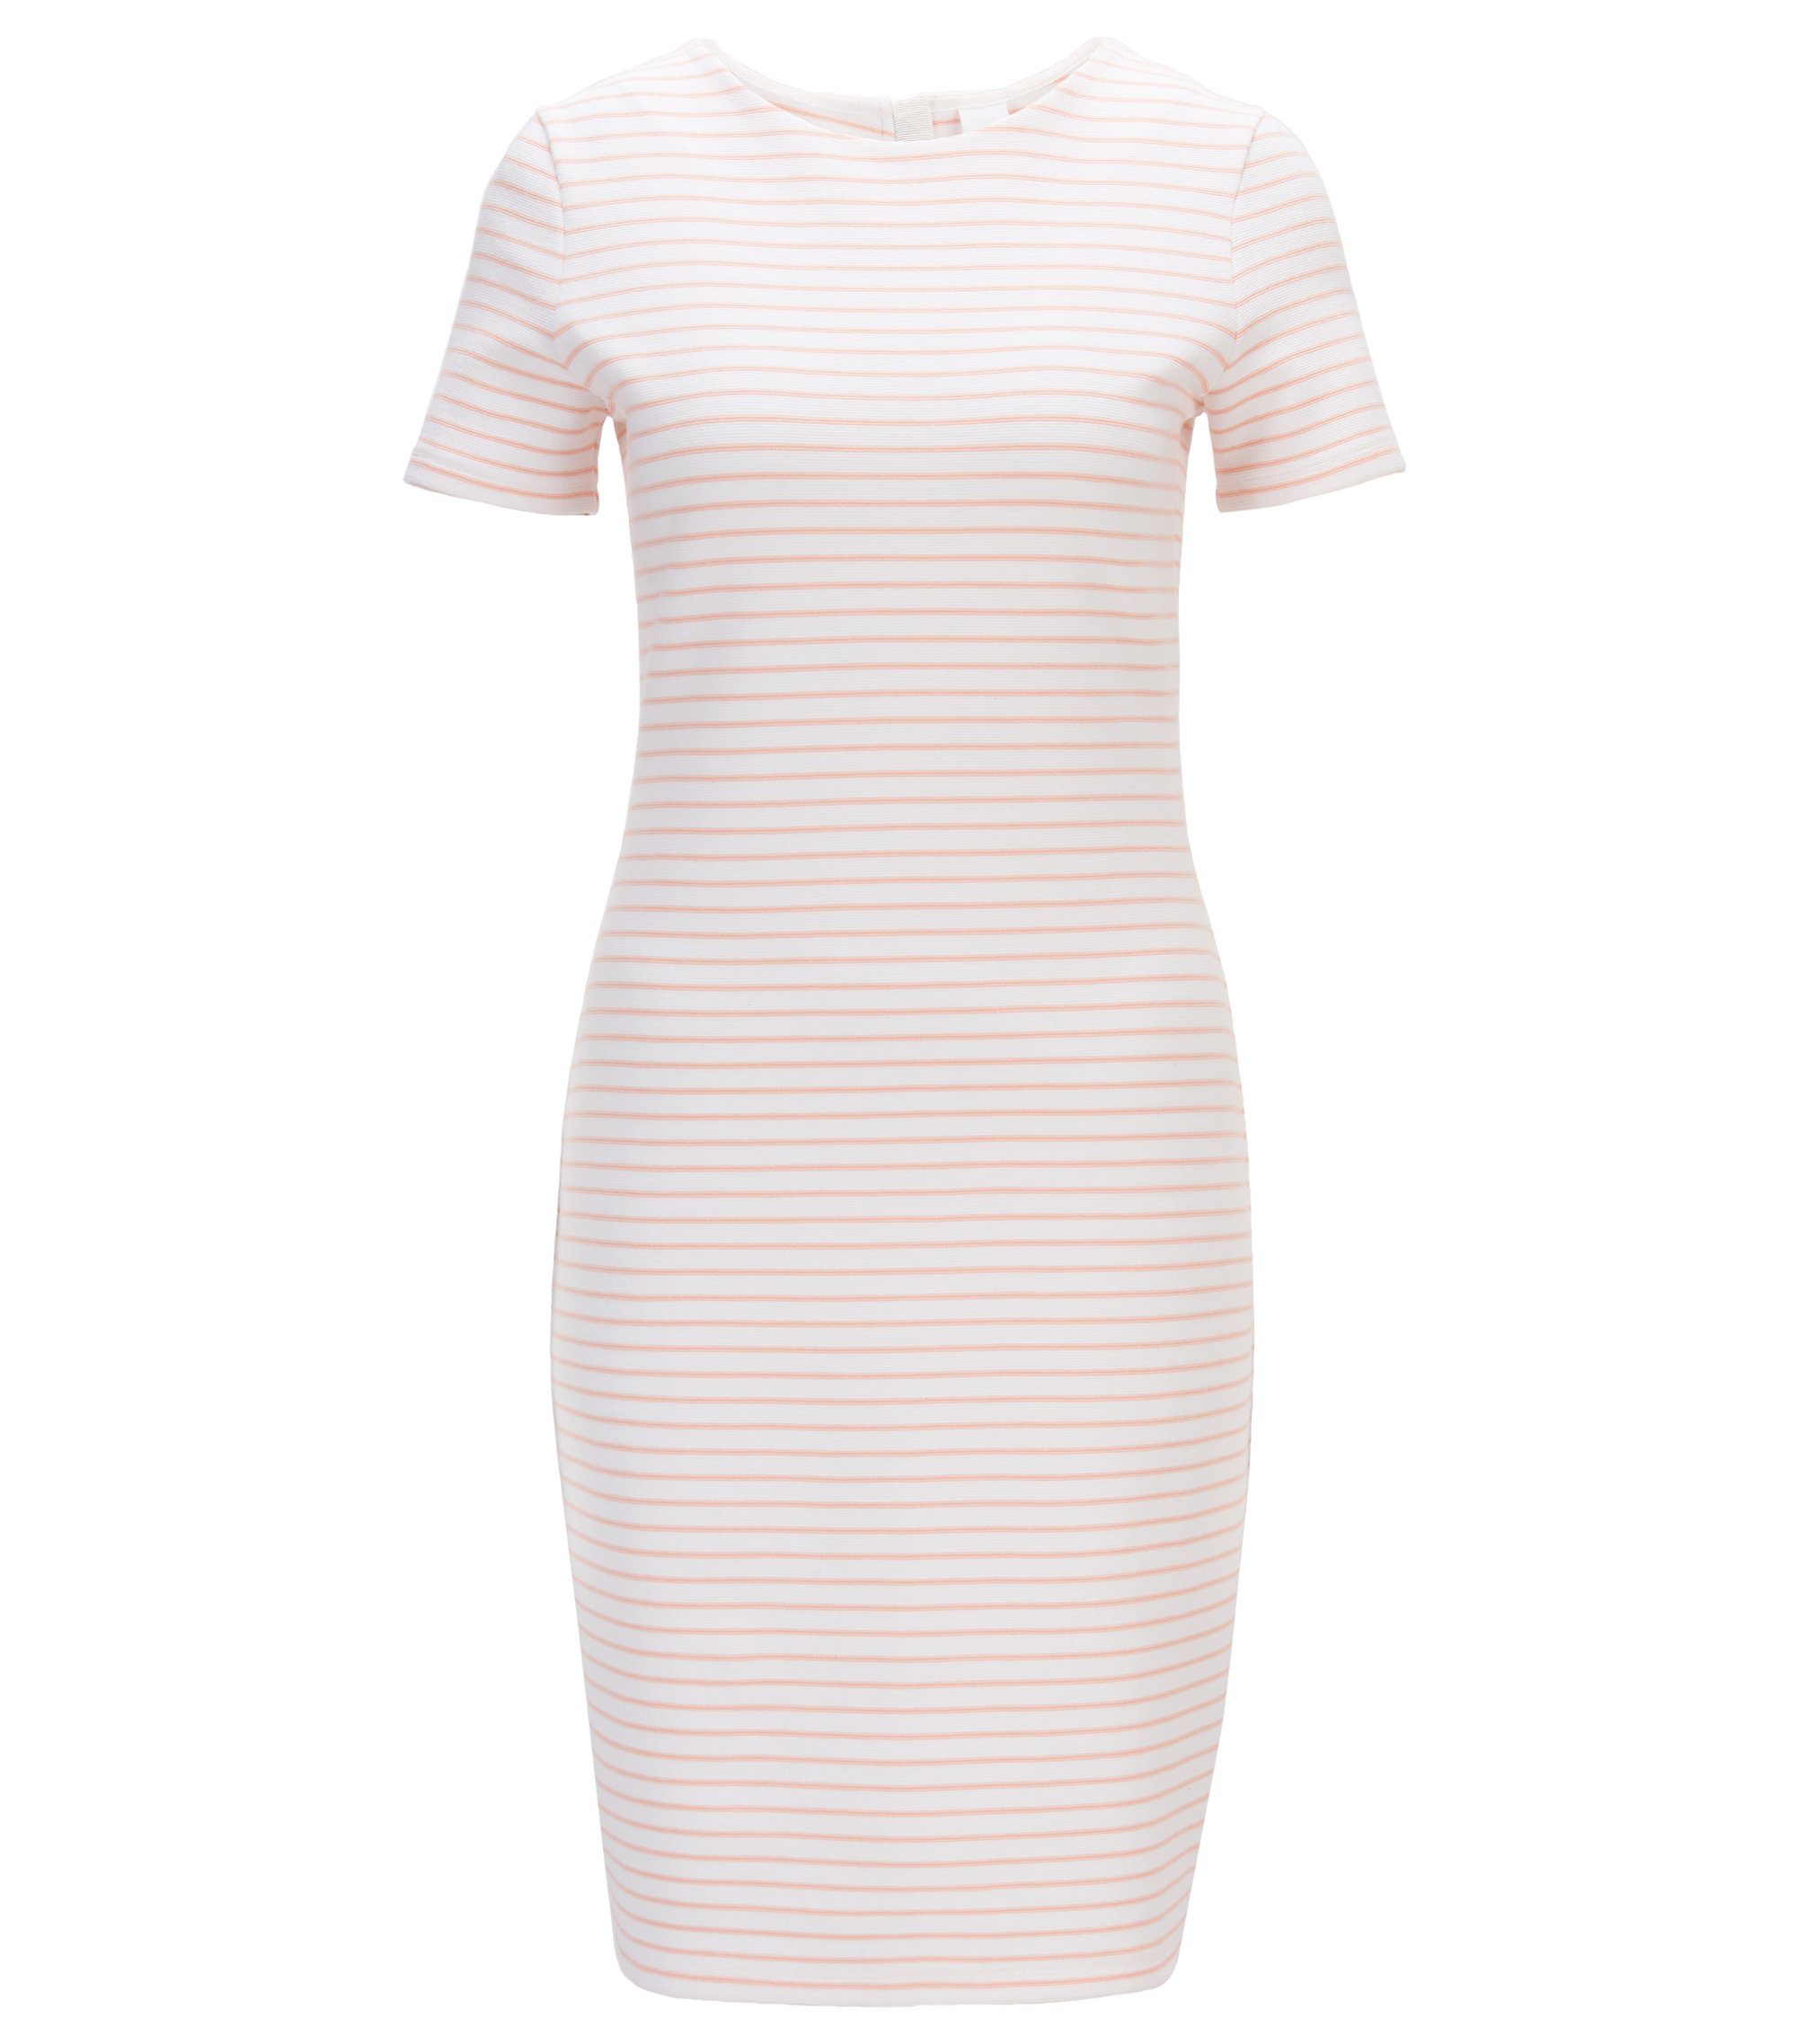 Short-sleeved striped dress in a cotton blend, White